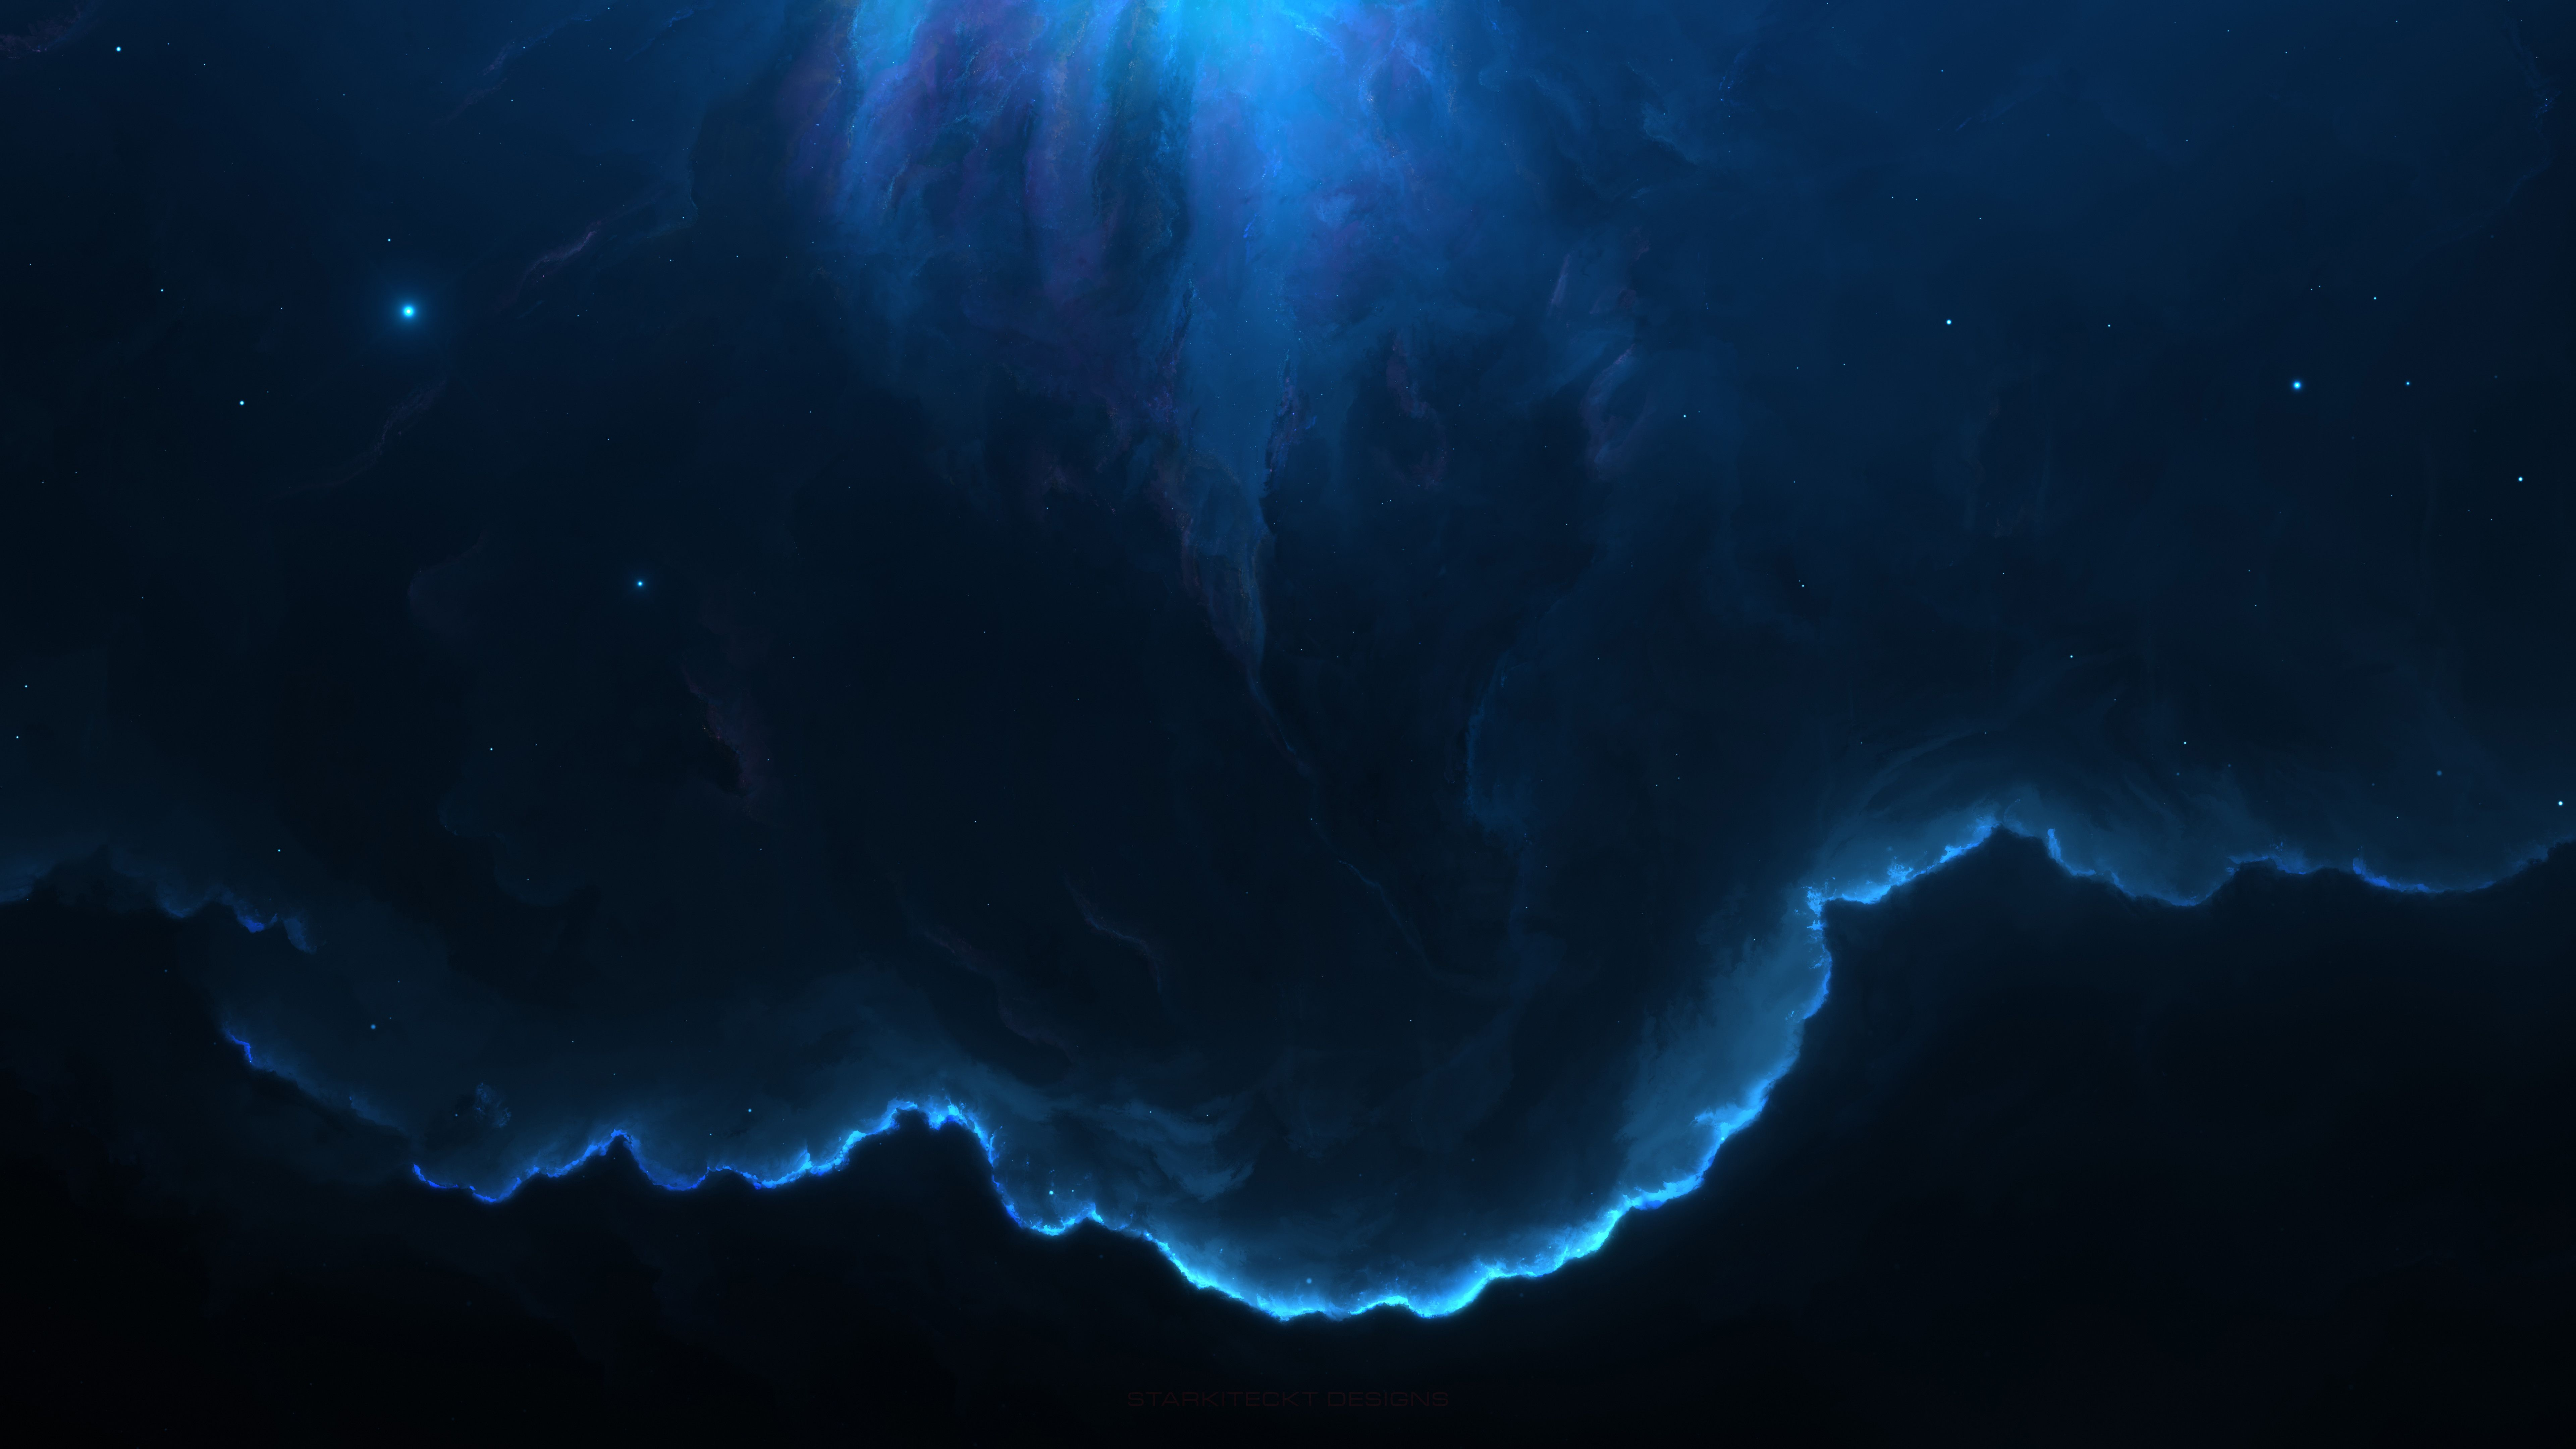 7680x4320 7680x4320 Nebula Space Blue 12k 8k HD 4k Wallpapers, Images ...